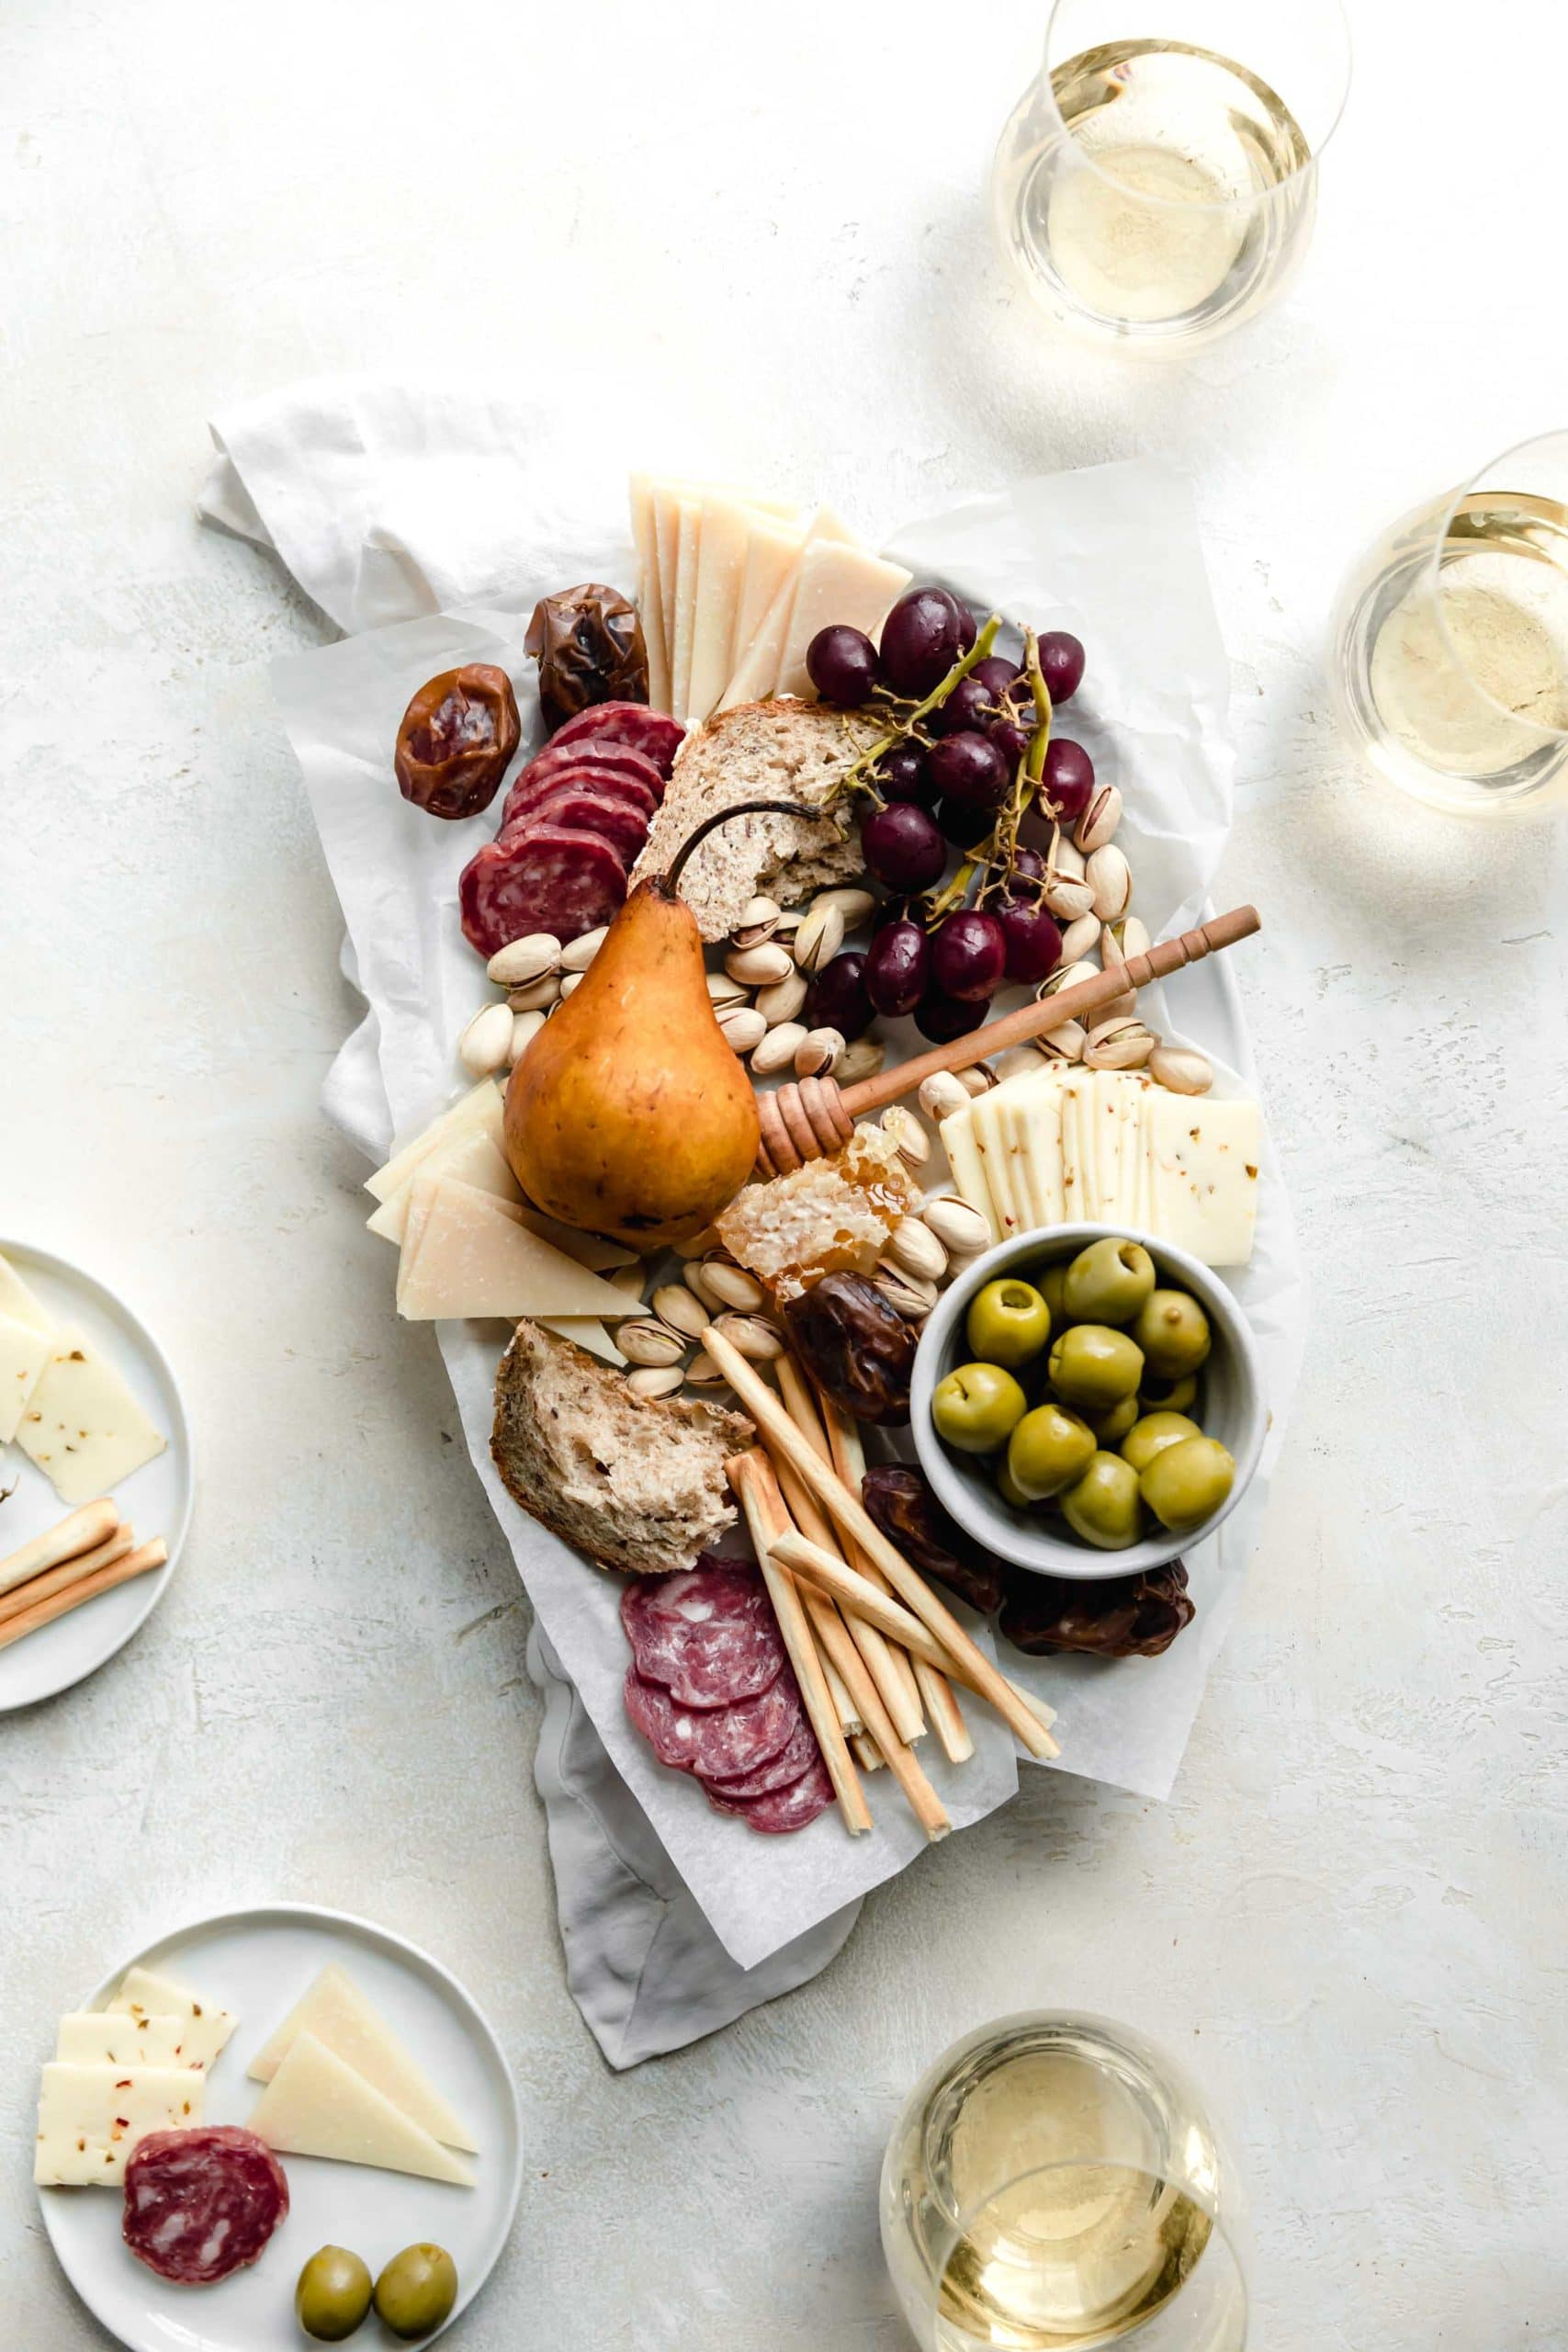 There is only one thing better than cheese, and that is cheese shared with friends! Whip up this easy holiday cheeseboard for your Friendsgiving or holiday party!